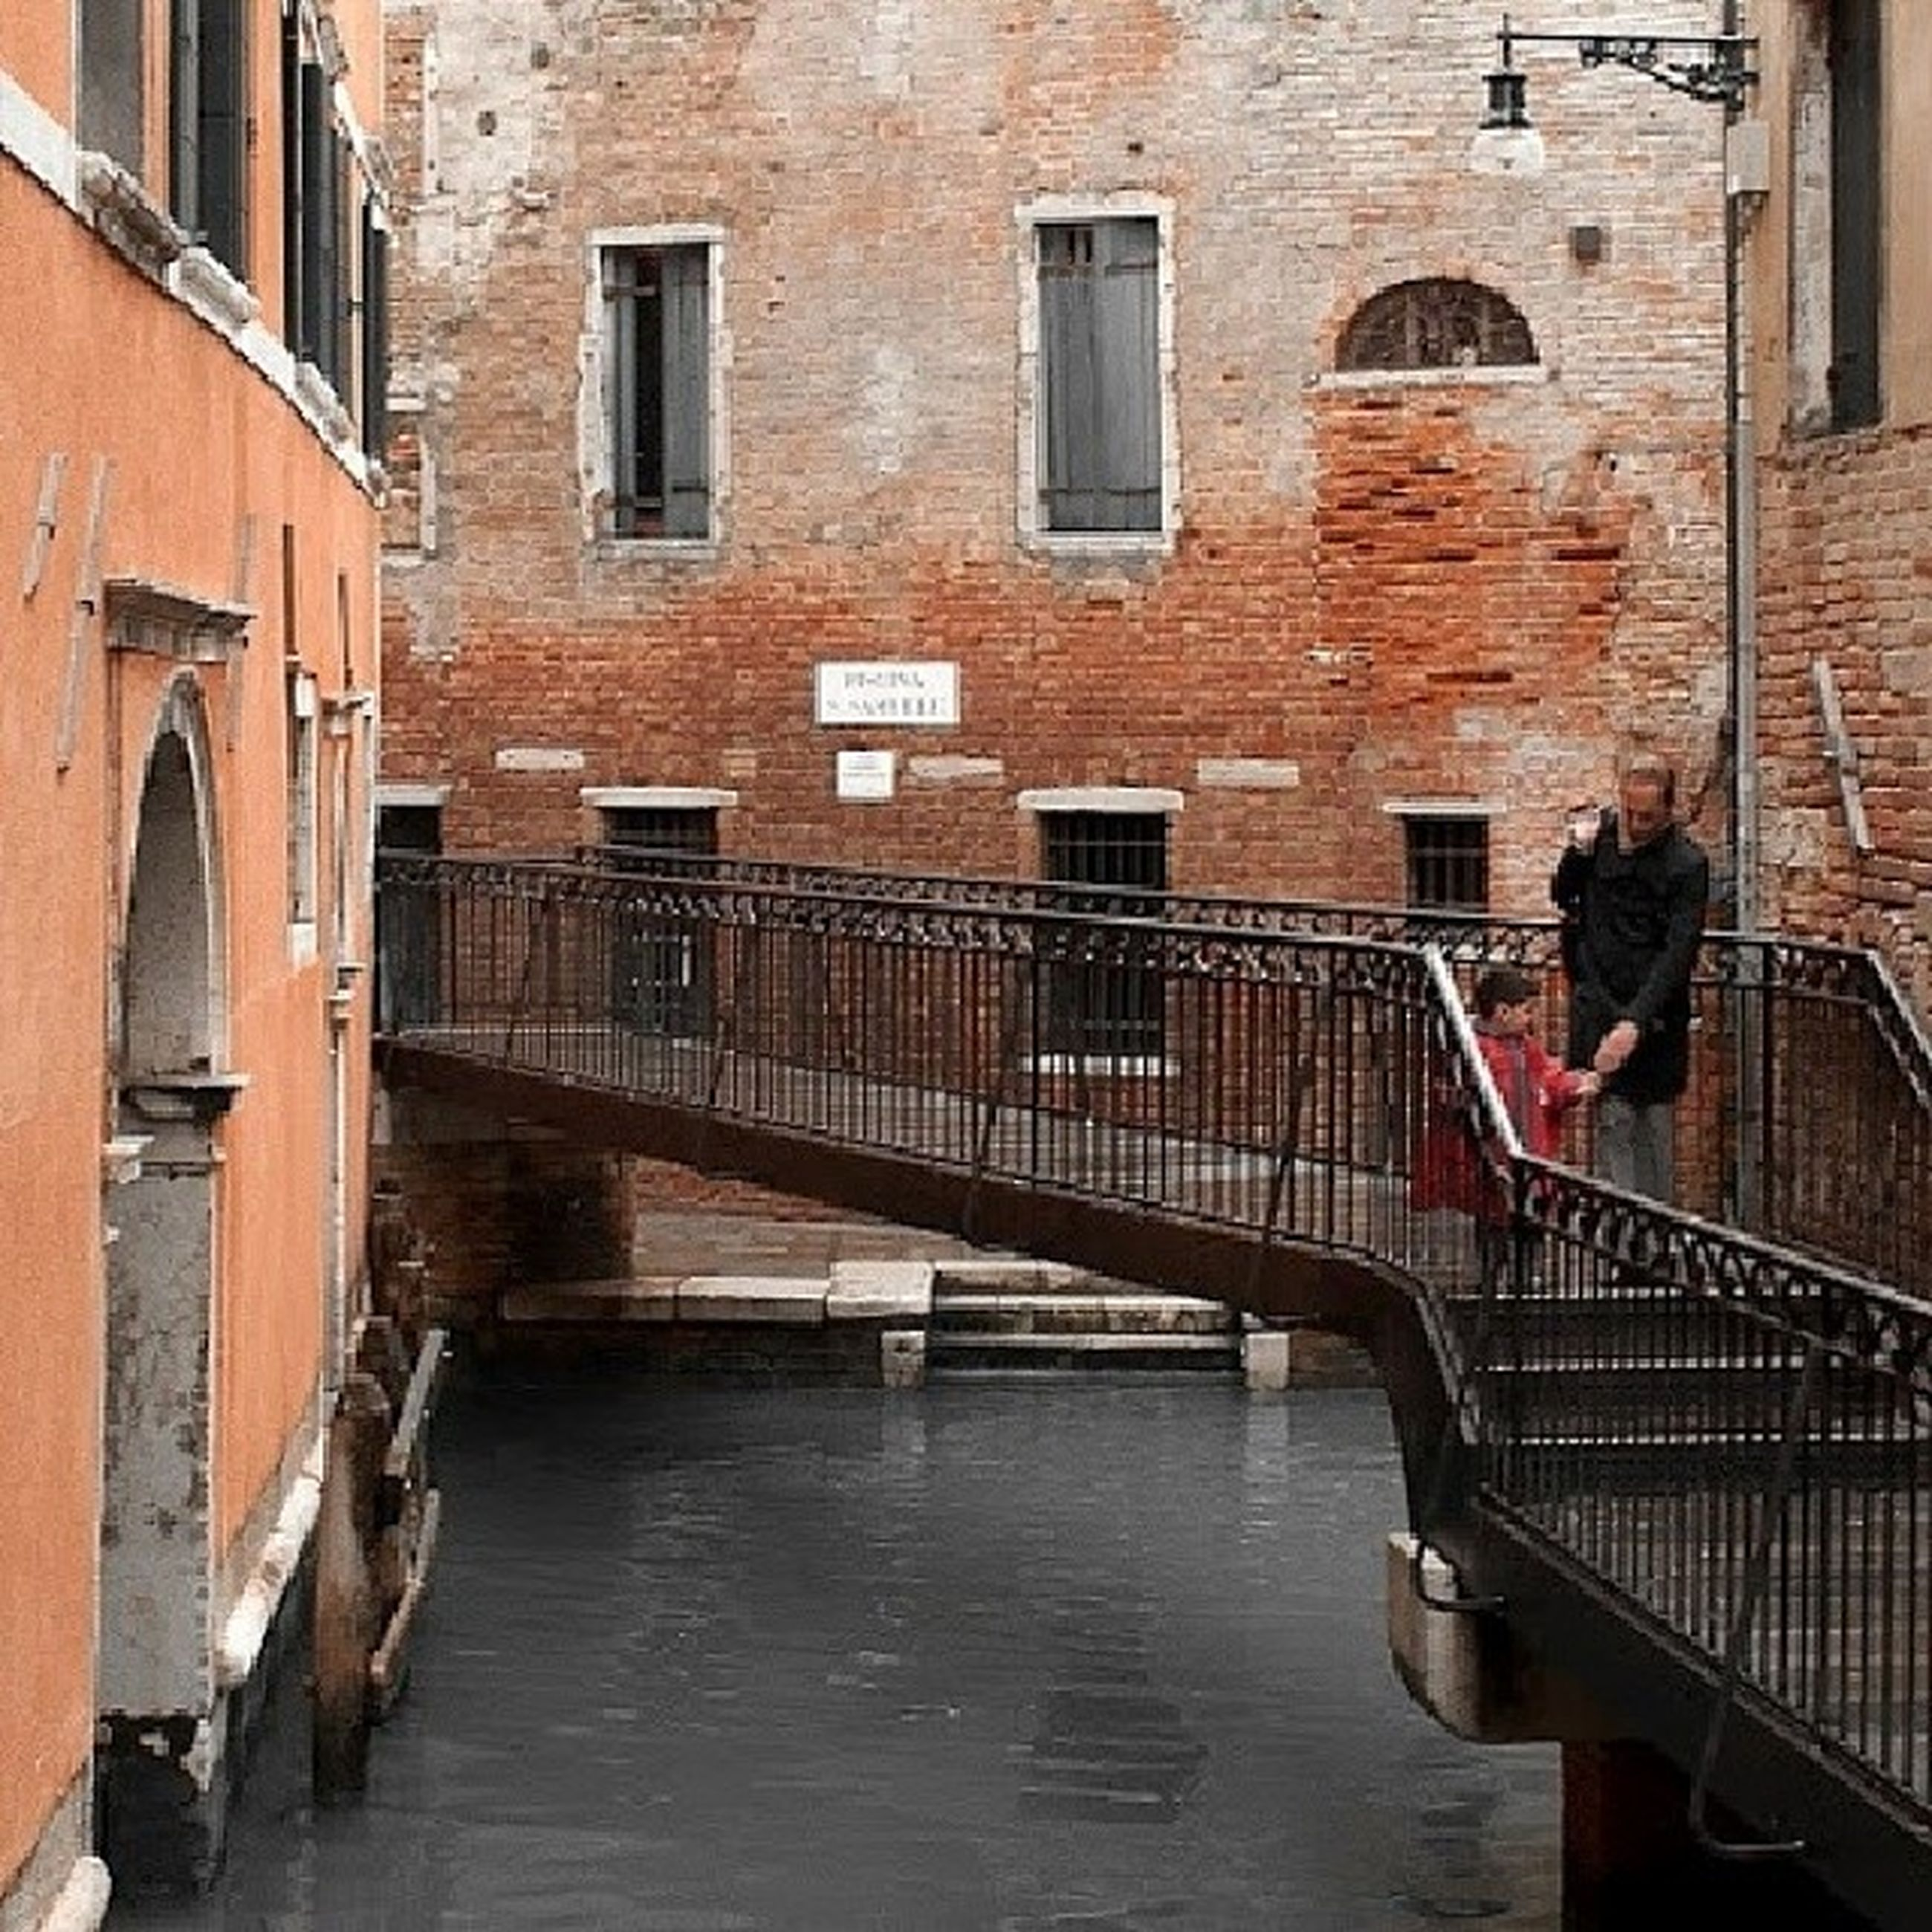 architecture, built structure, building exterior, men, canal, building, lifestyles, water, person, window, walking, leisure activity, steps, city, full length, arch, transportation, railing